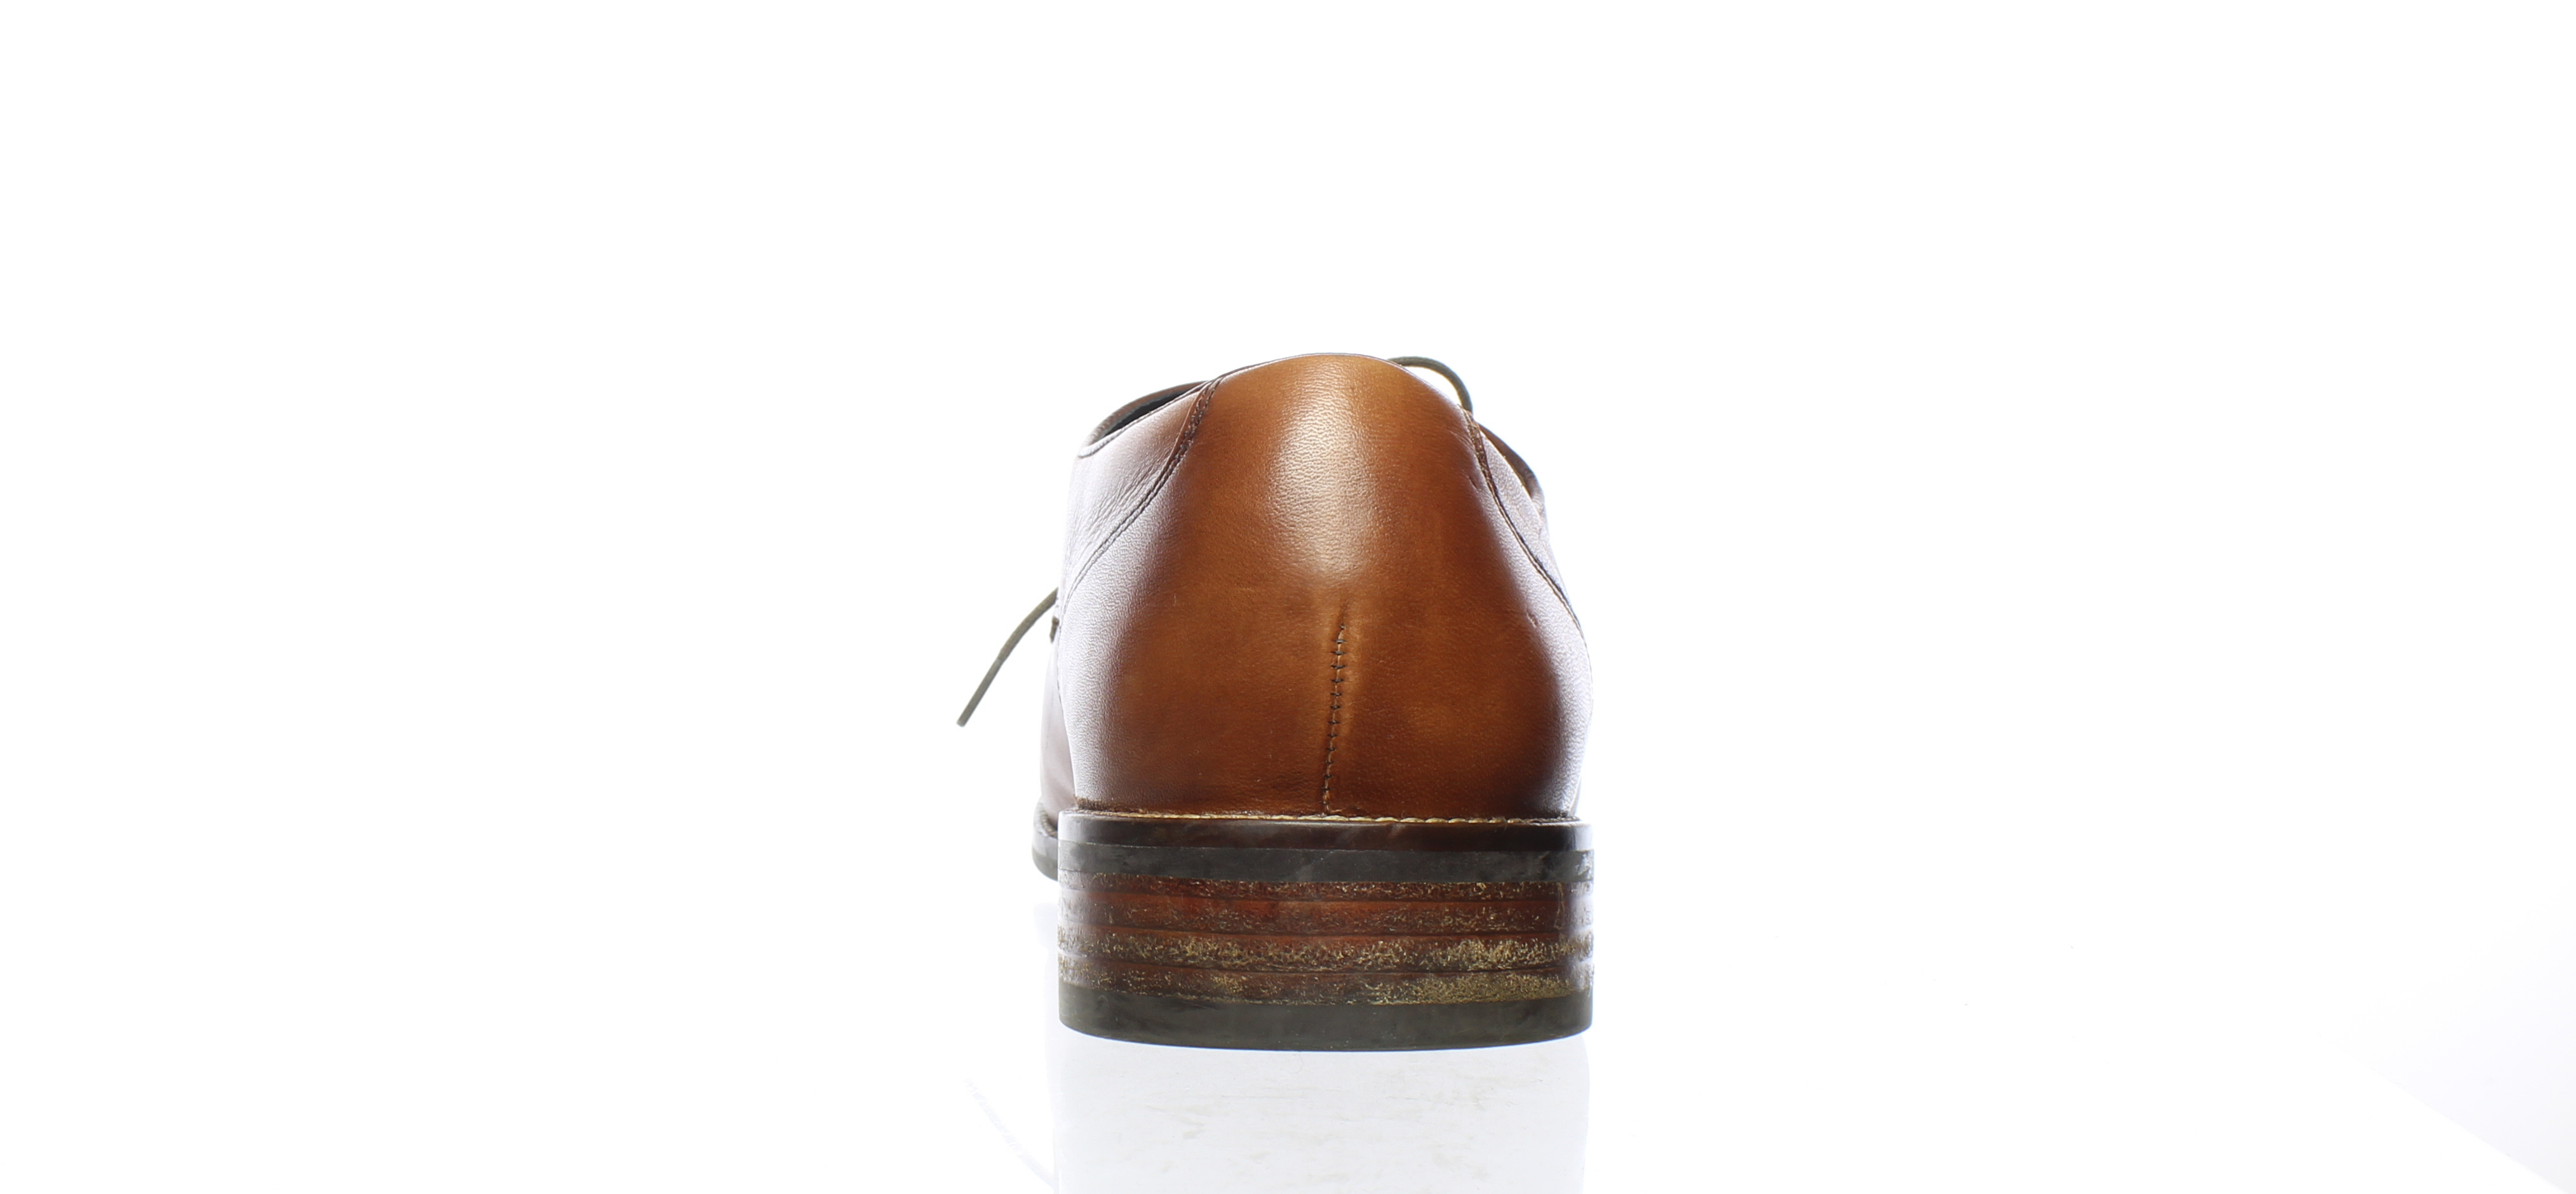 6586fc99a90 Cole Haan MENS Jay Grand 2 Gore Brown Oxford Dress Shoe Size 10.5 (174885)